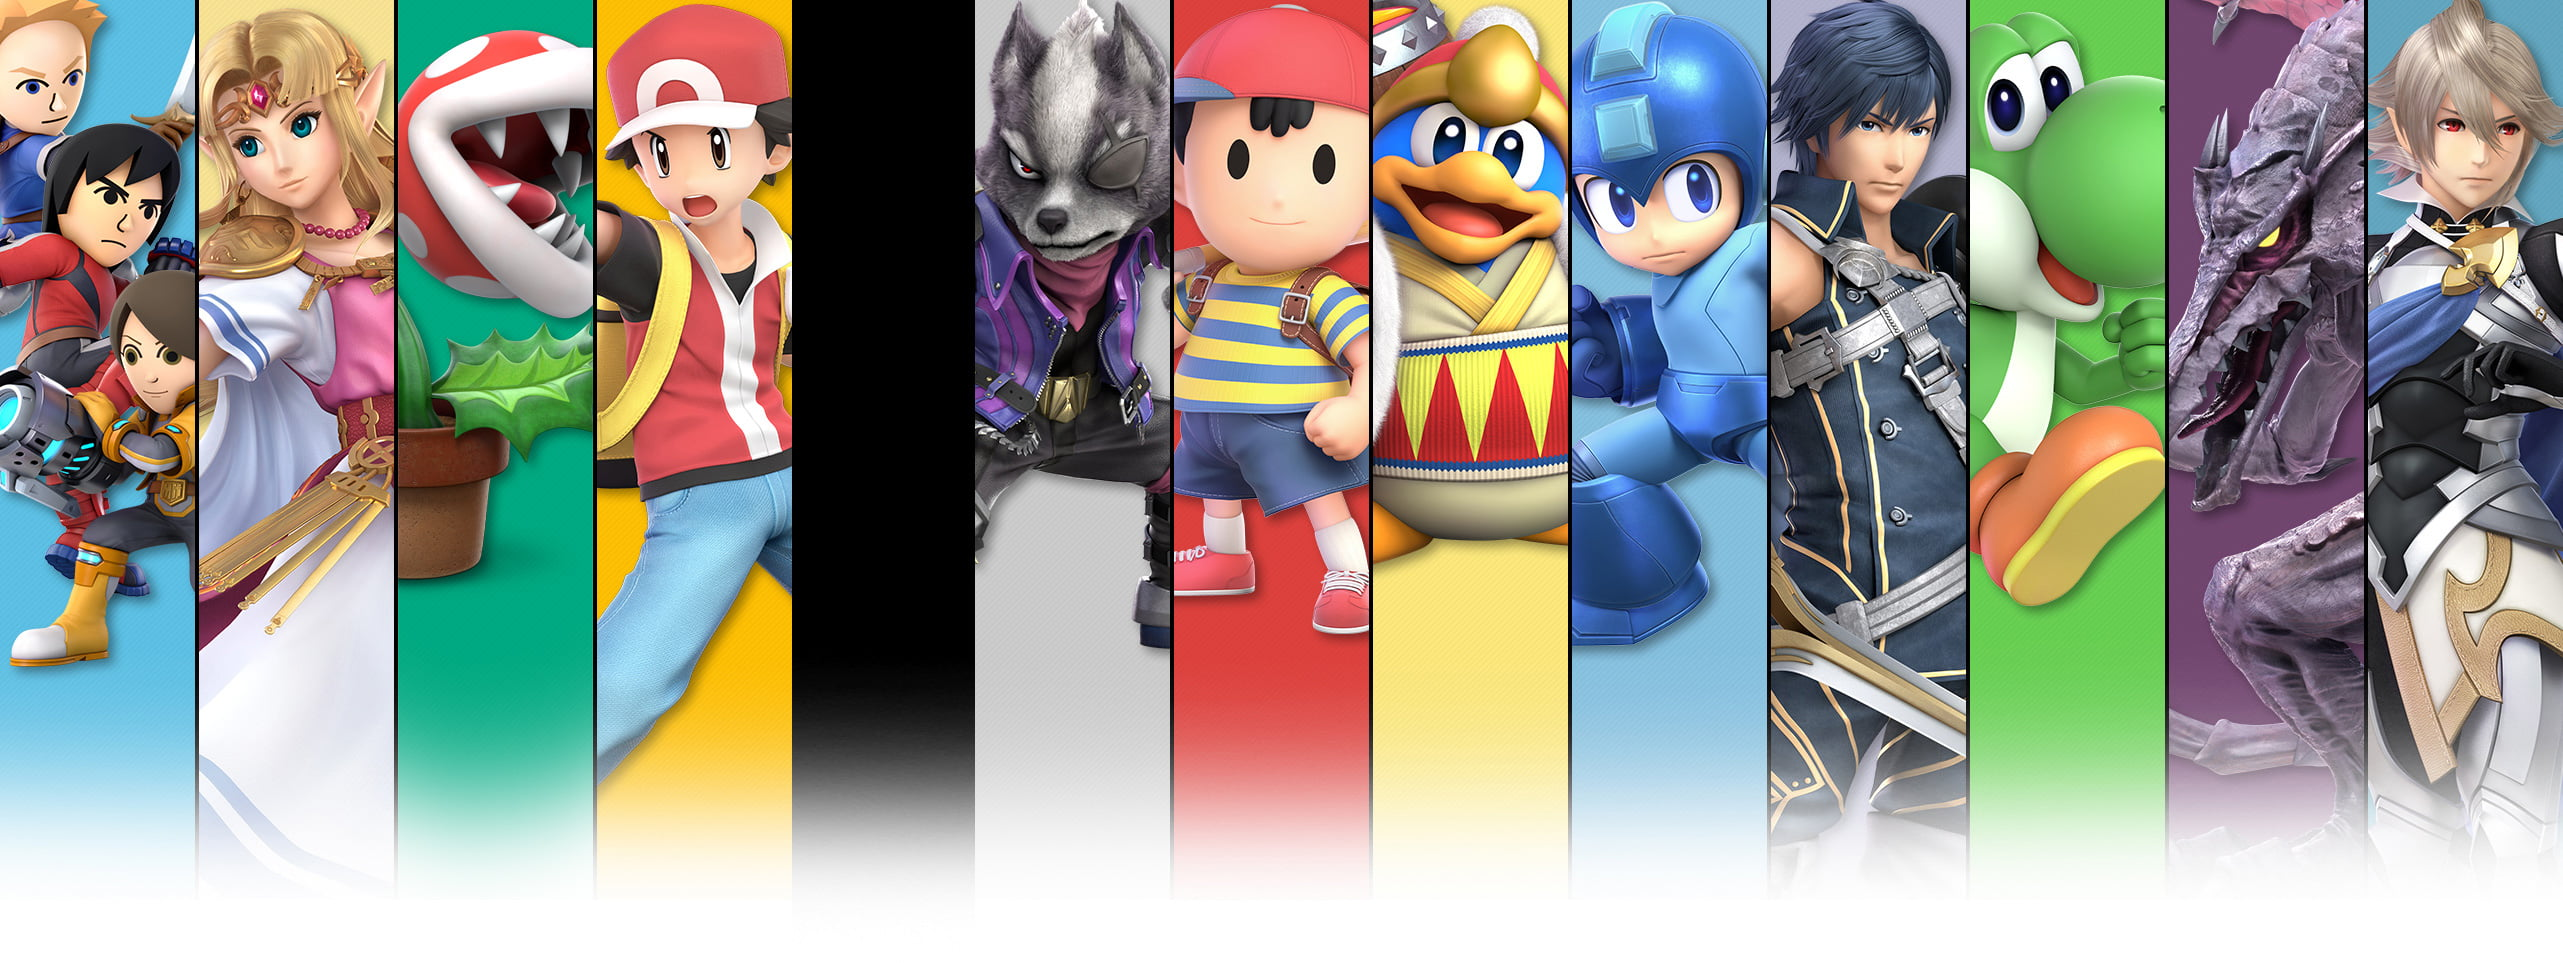 Fighters | Super Smash Bros  Ultimate for the Nintendo Switch System